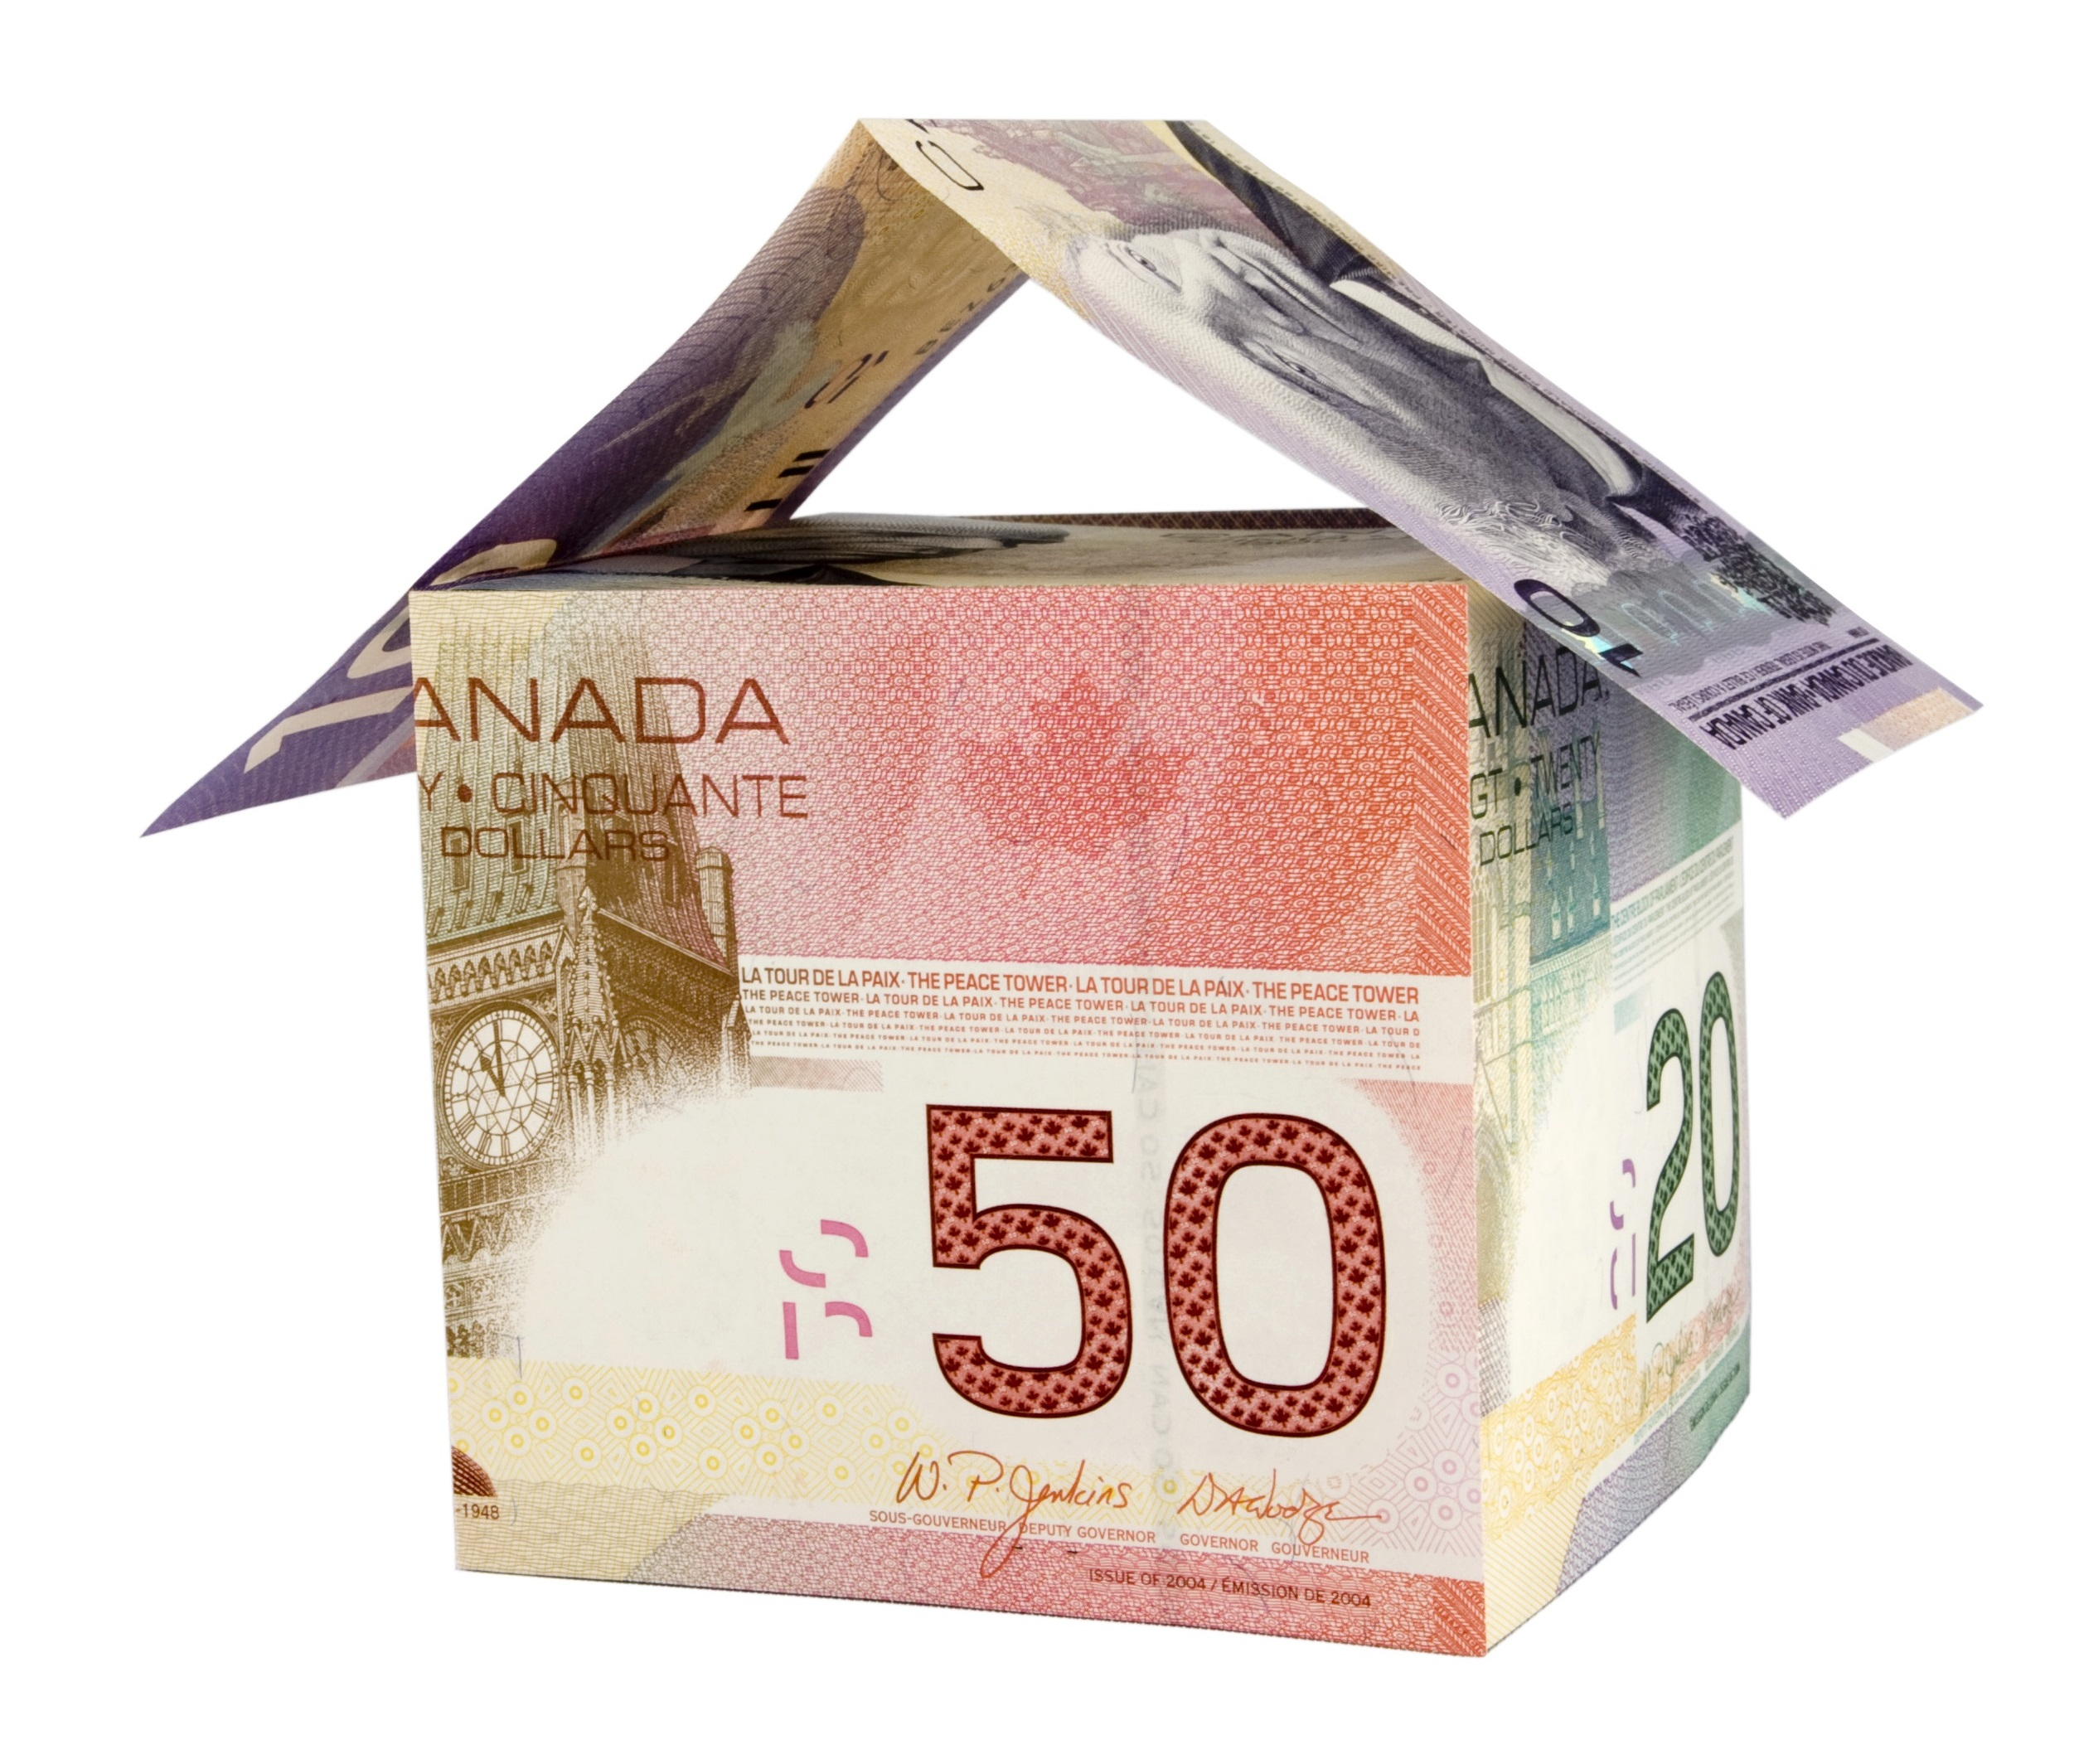 Insulation association launches Canada-wide listing of energy efficiency incentive and rebate programs